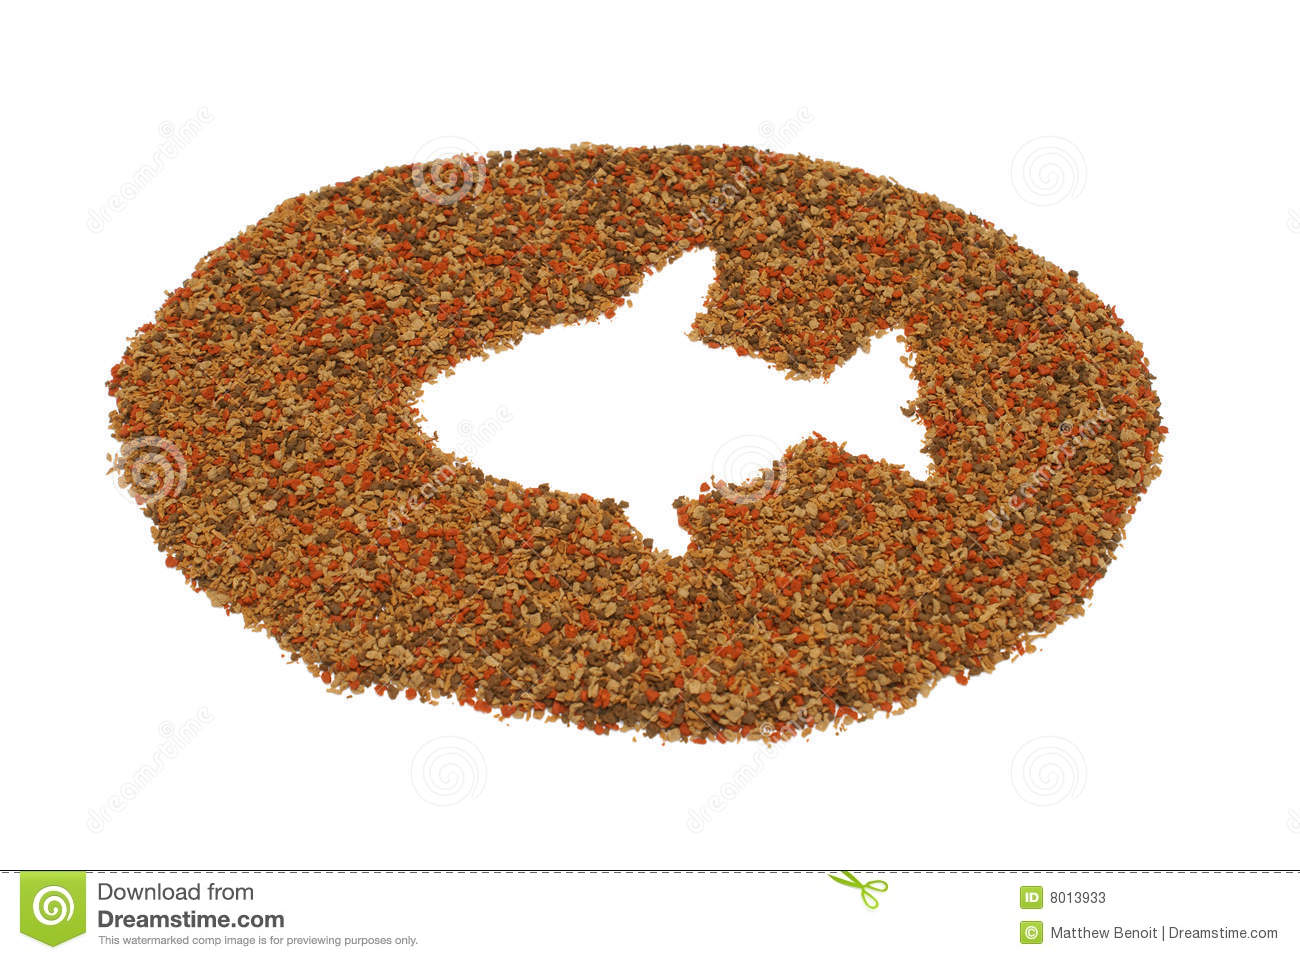 Pet fish food stock photos image 8013933 for What is fish food made of